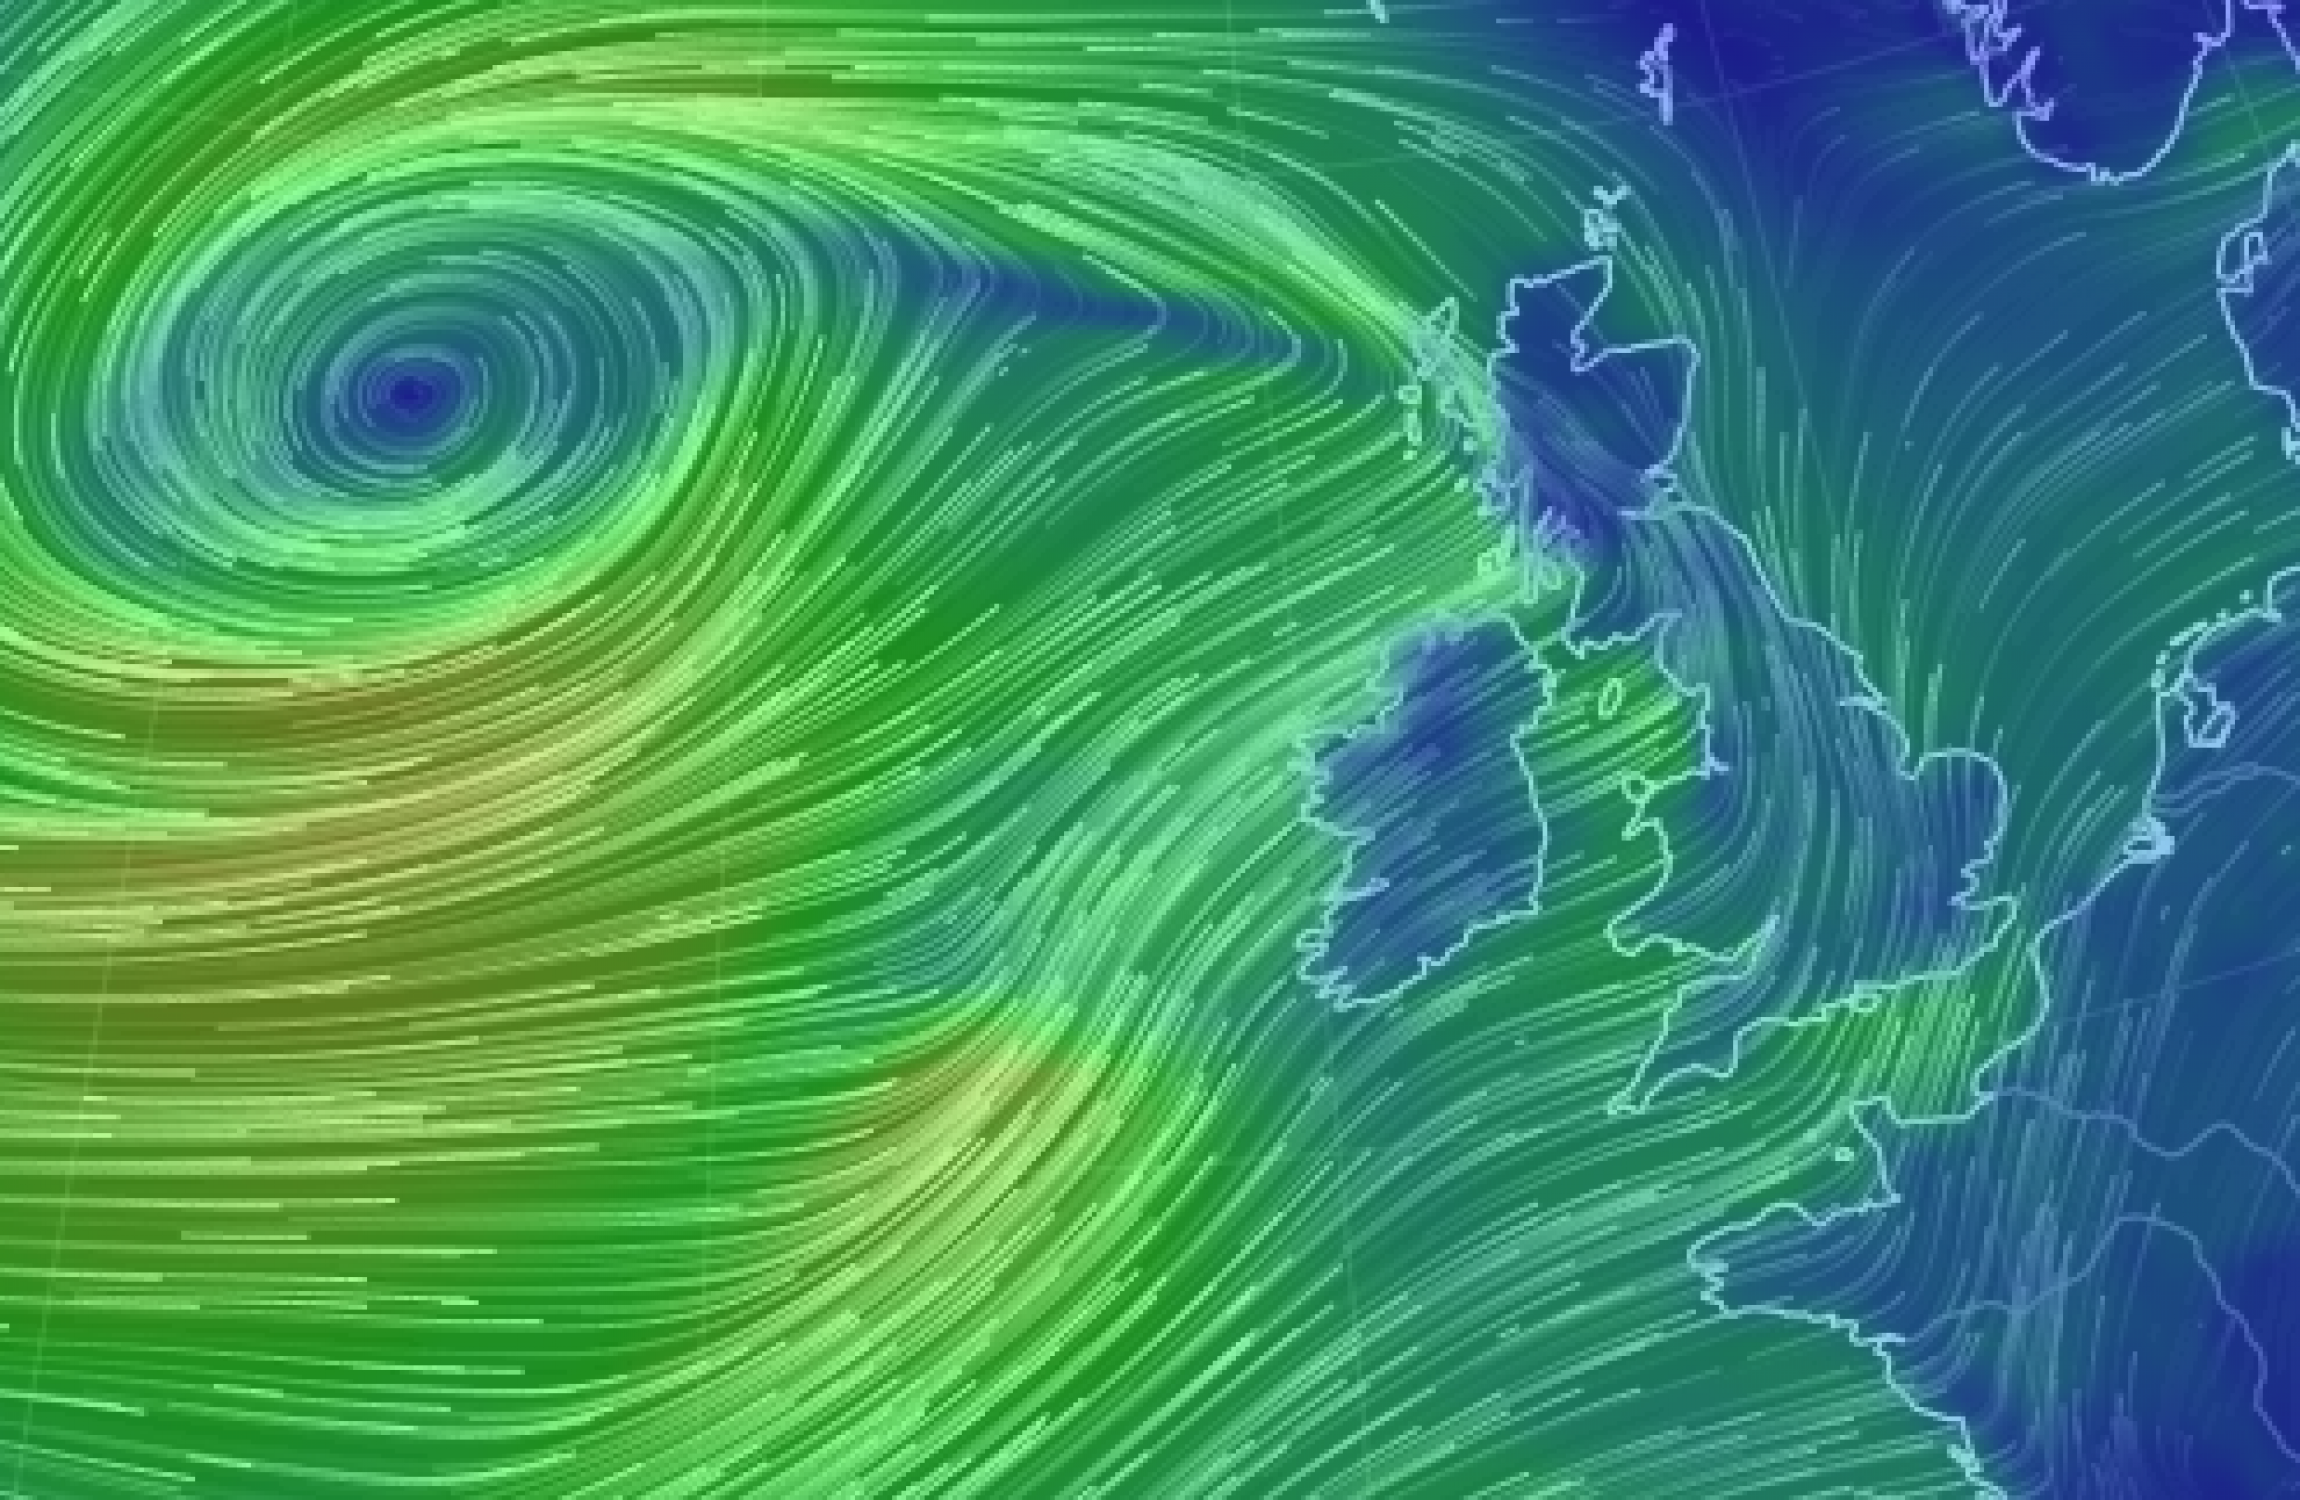 Storm Eleanor batters Europe, bringing chaos and destruction